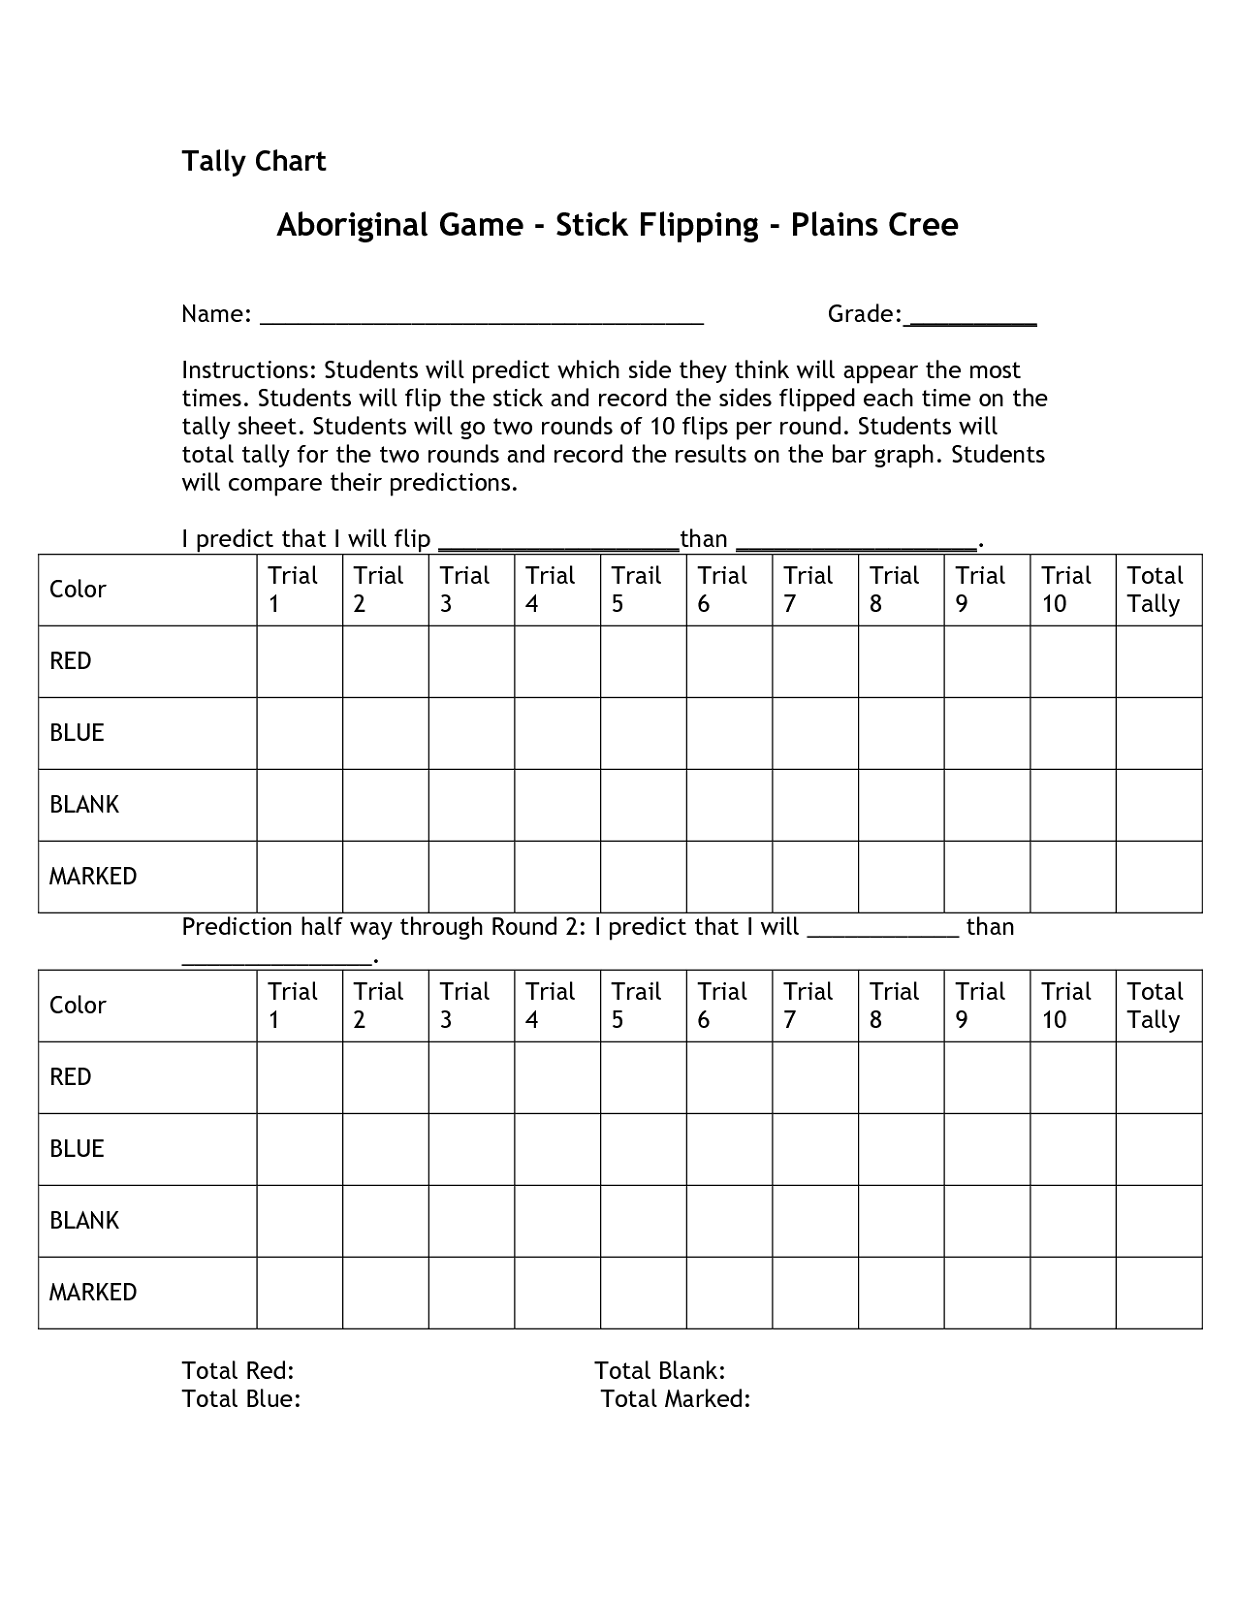 Tally Mark Worksheets – Tally Mark Worksheet